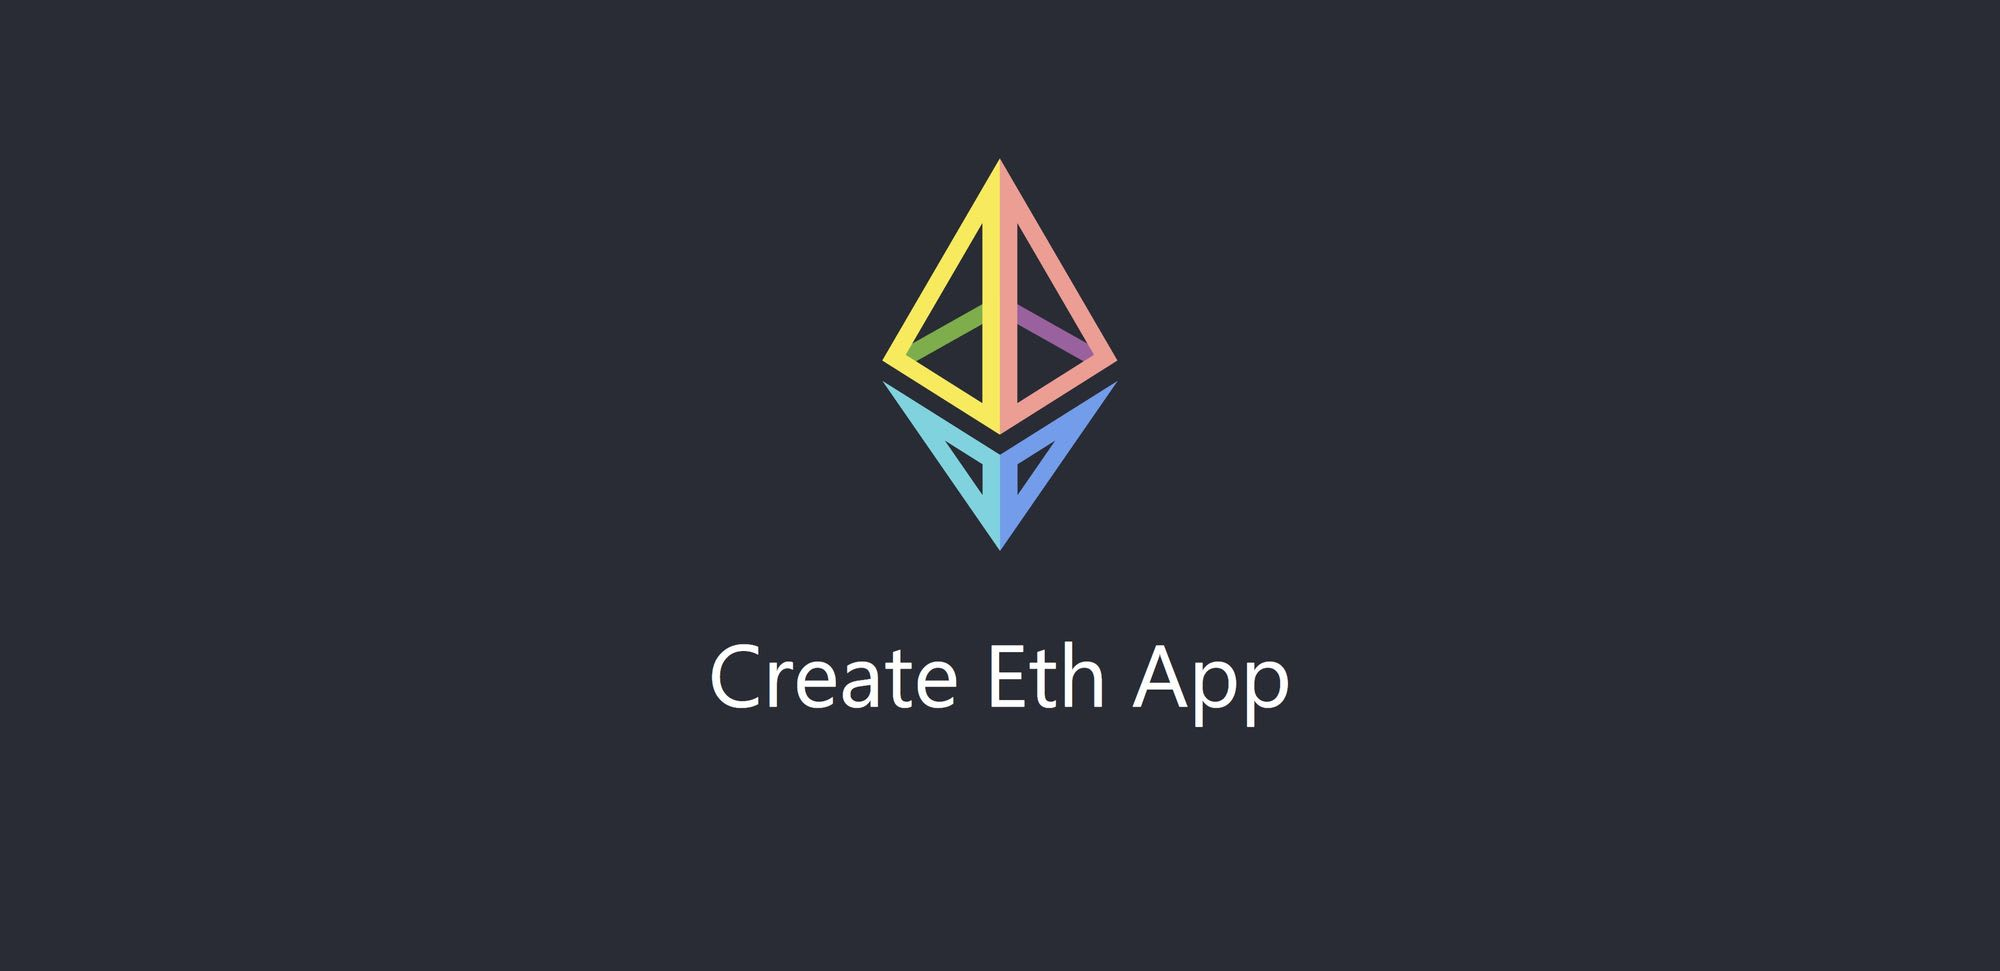 Build Your Ethereum Project with Create Eth App